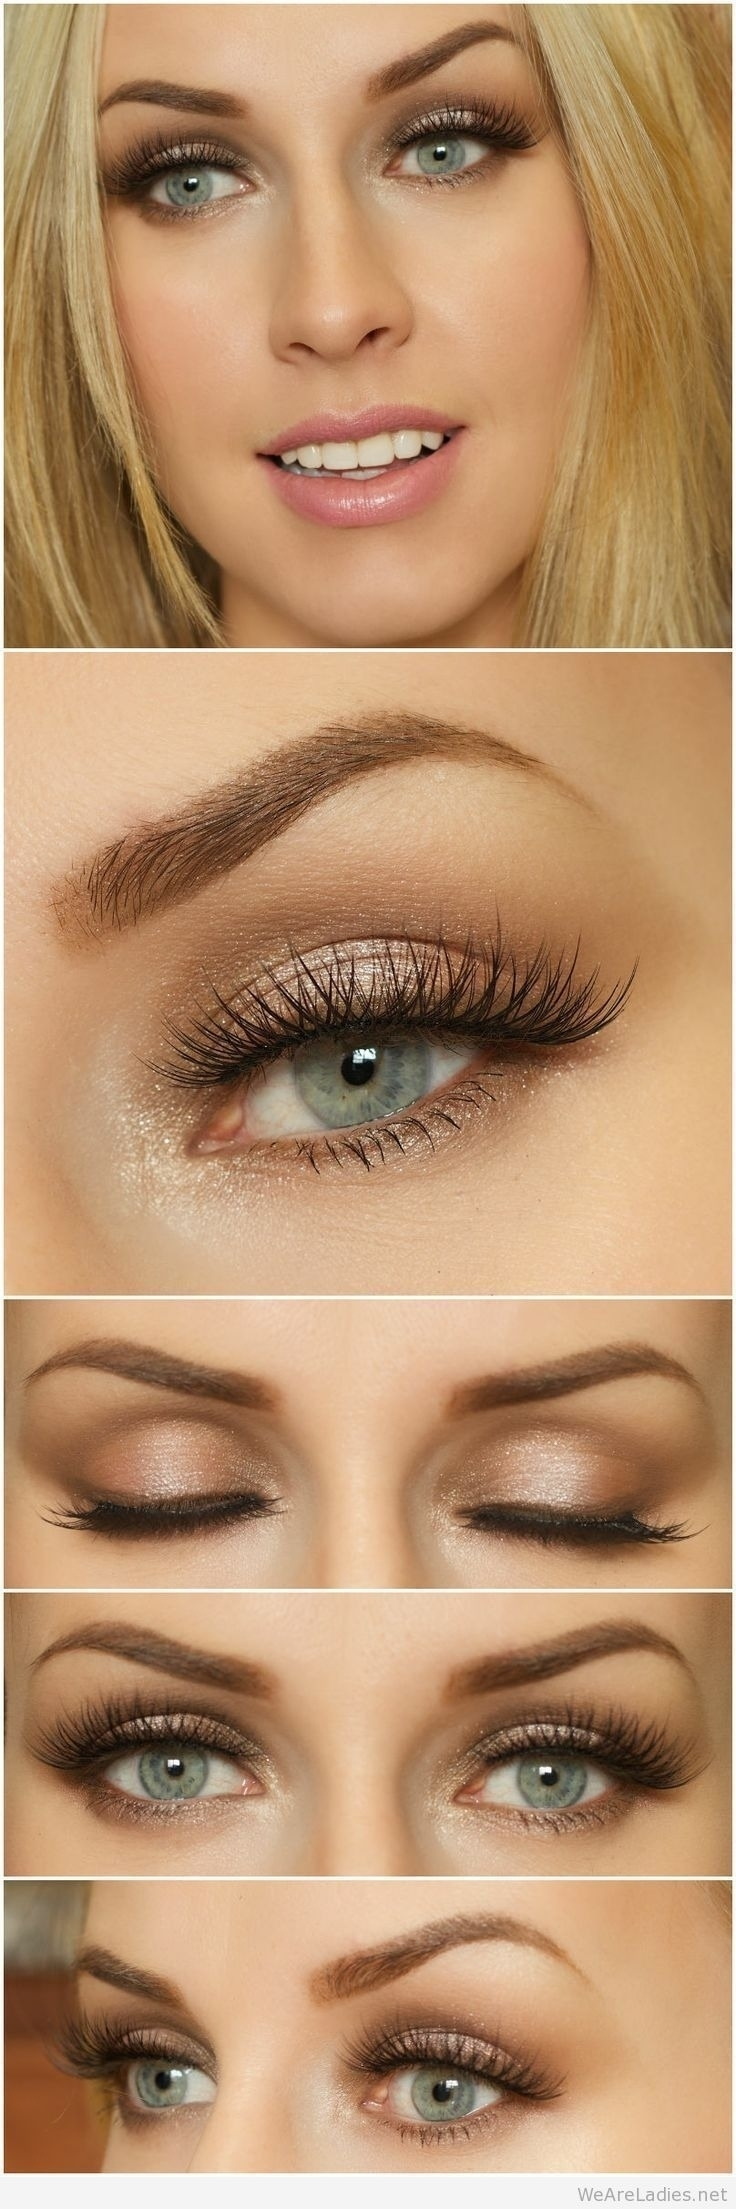 Makeup For Blue Green Eyes And Blonde Hair | Saubhaya Makeup intended for Best Color Eyeshadow For Green Eyes And Blonde Hair